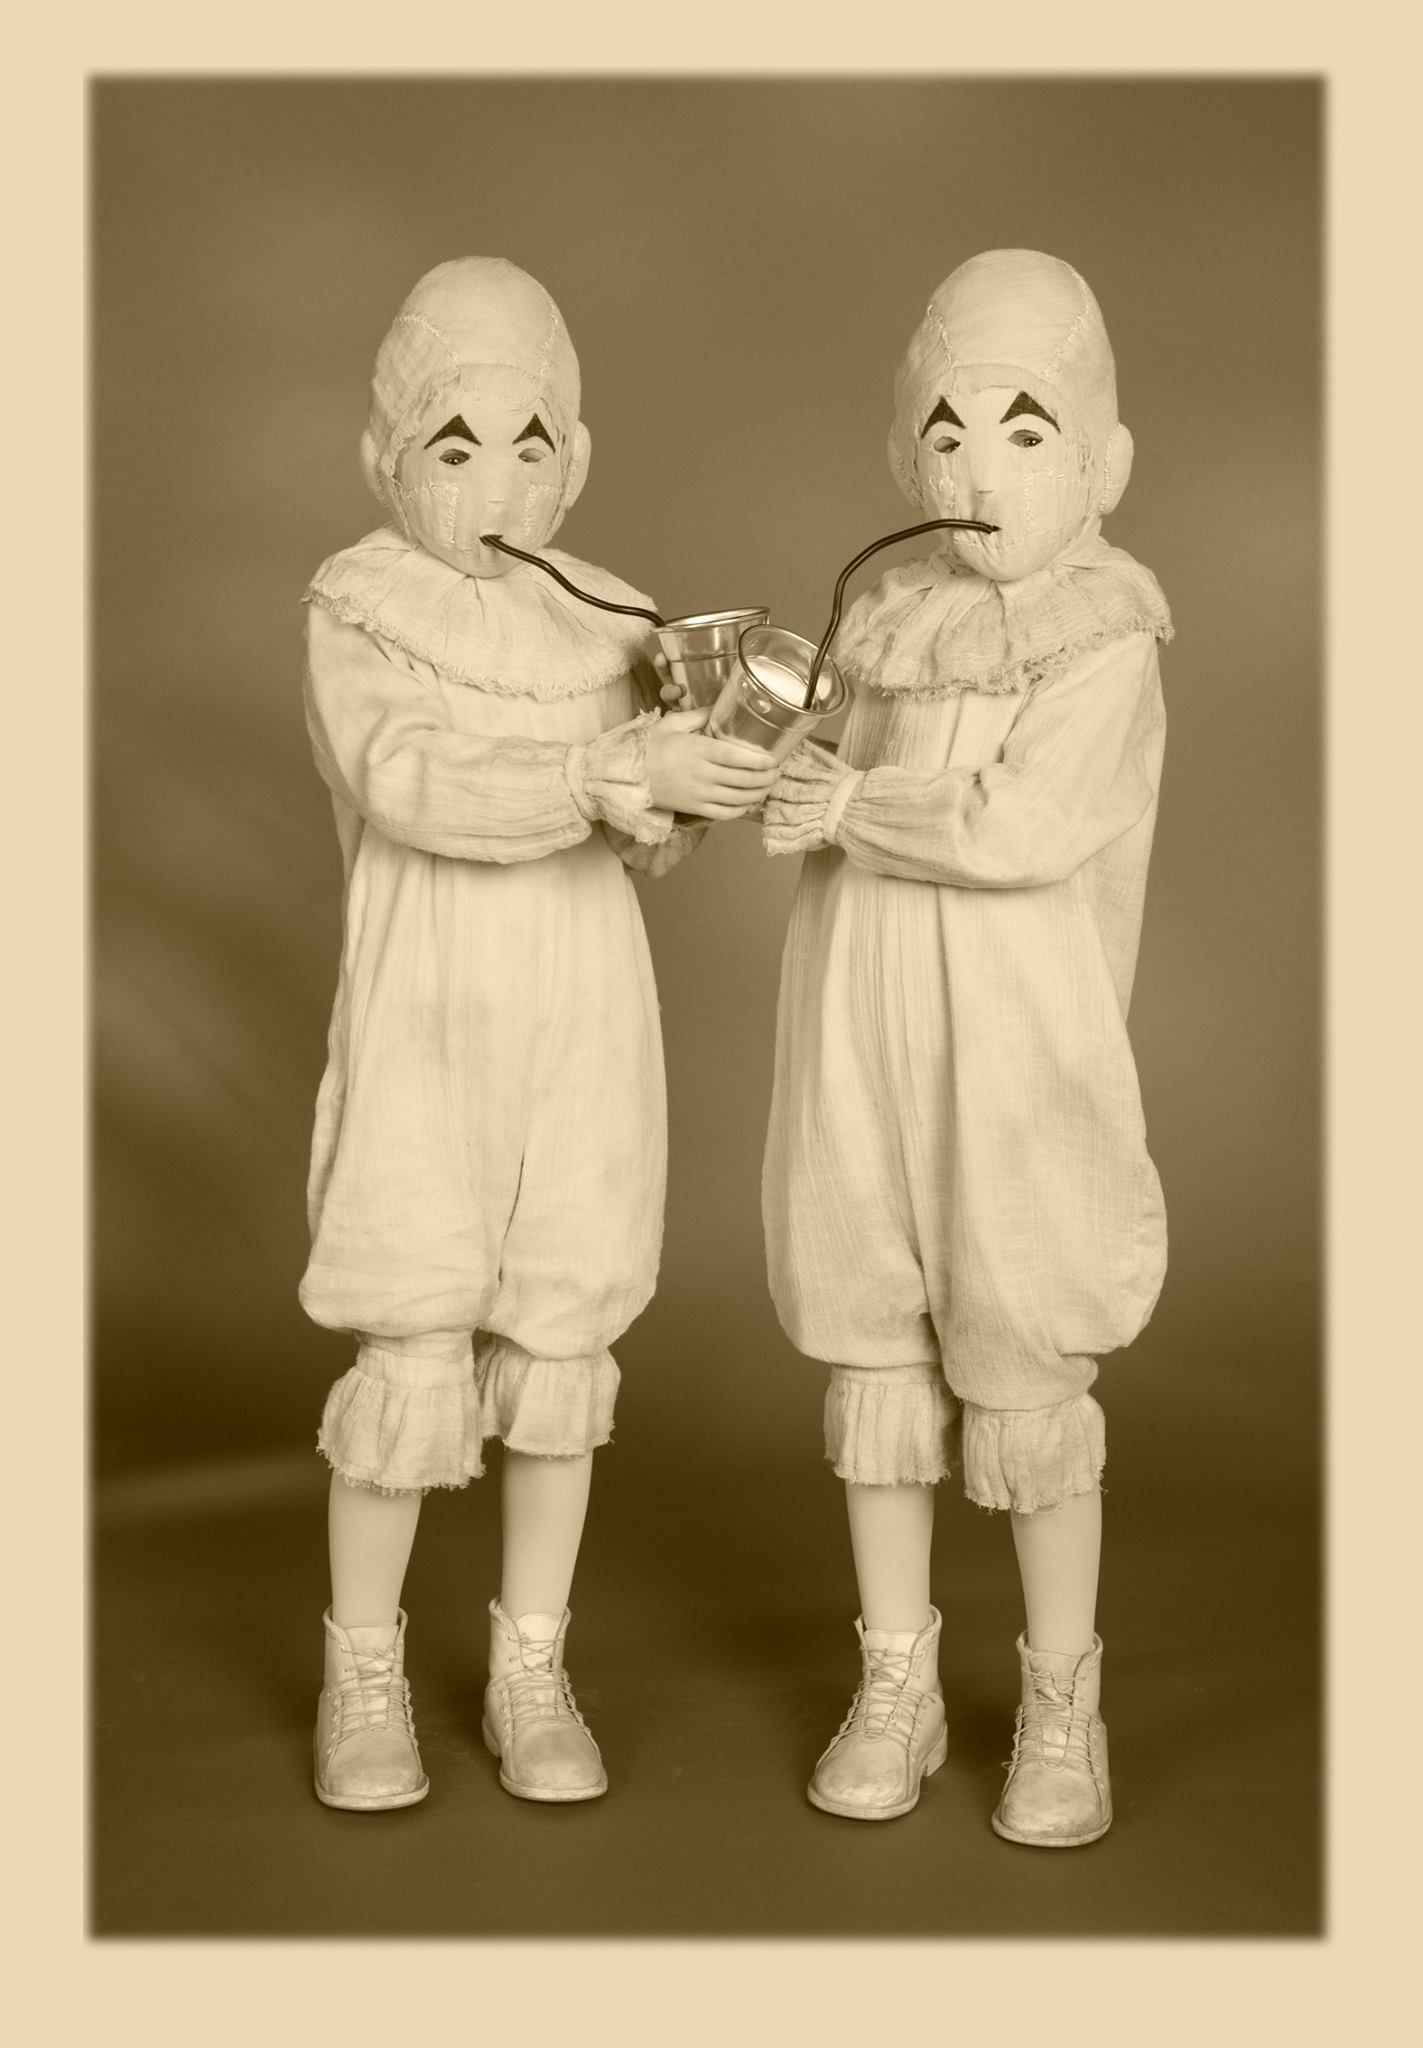 A Look At The Telepathic Twins In A Vintage Portrait Series By Leah Gall Miss Peregrine S Peculiar Children Peculiar Children Miss Peregrines Home For Peculiar